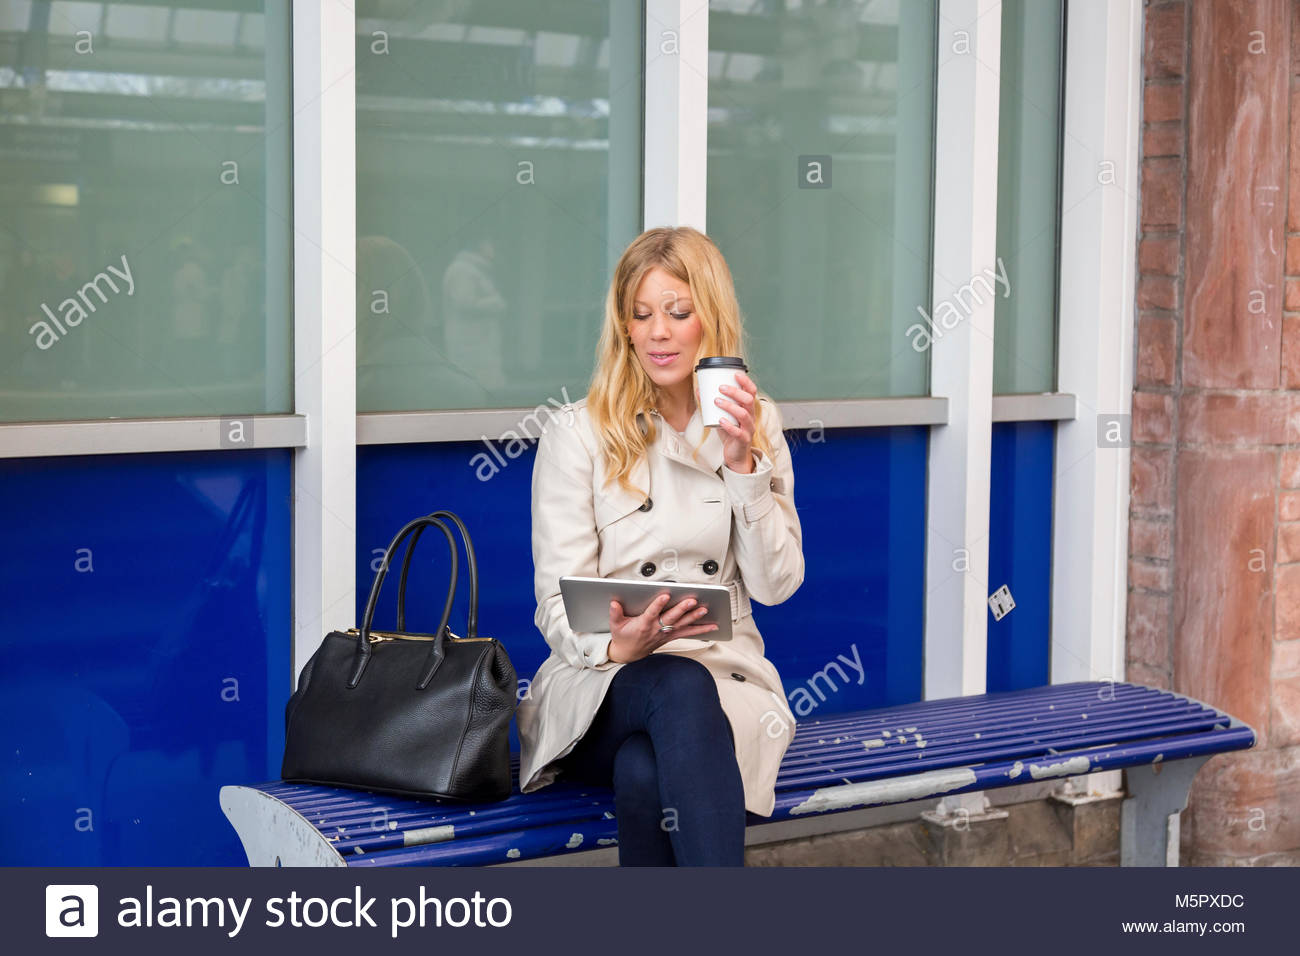 Young woman sitting waiting on a bench waiting for train - Stock Image